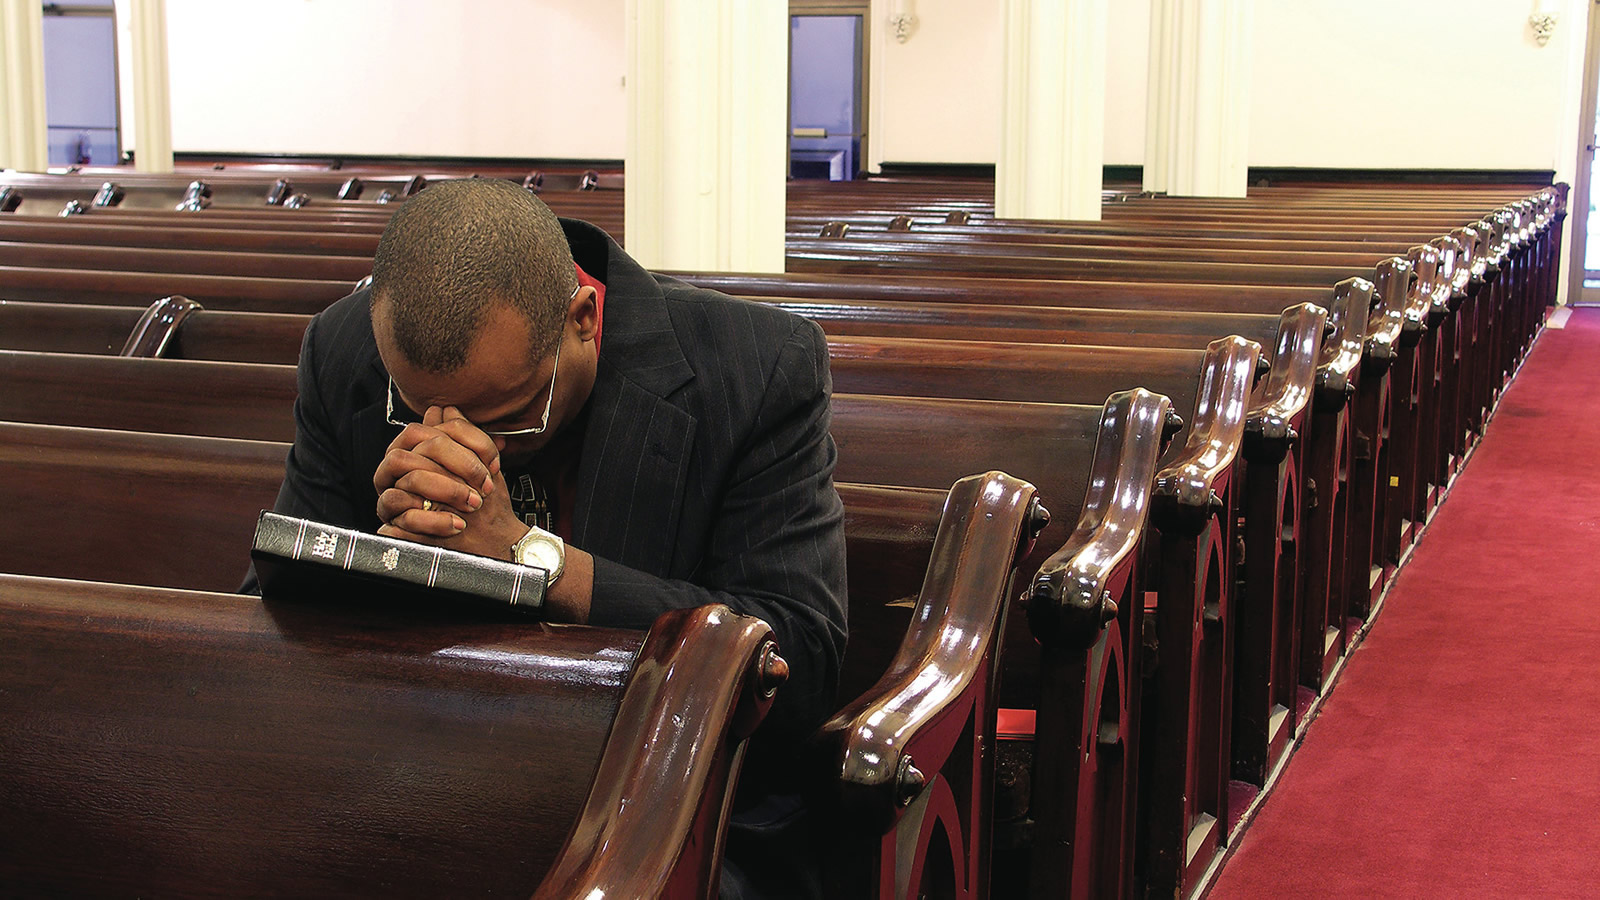 Black Man Praying in Church Pews